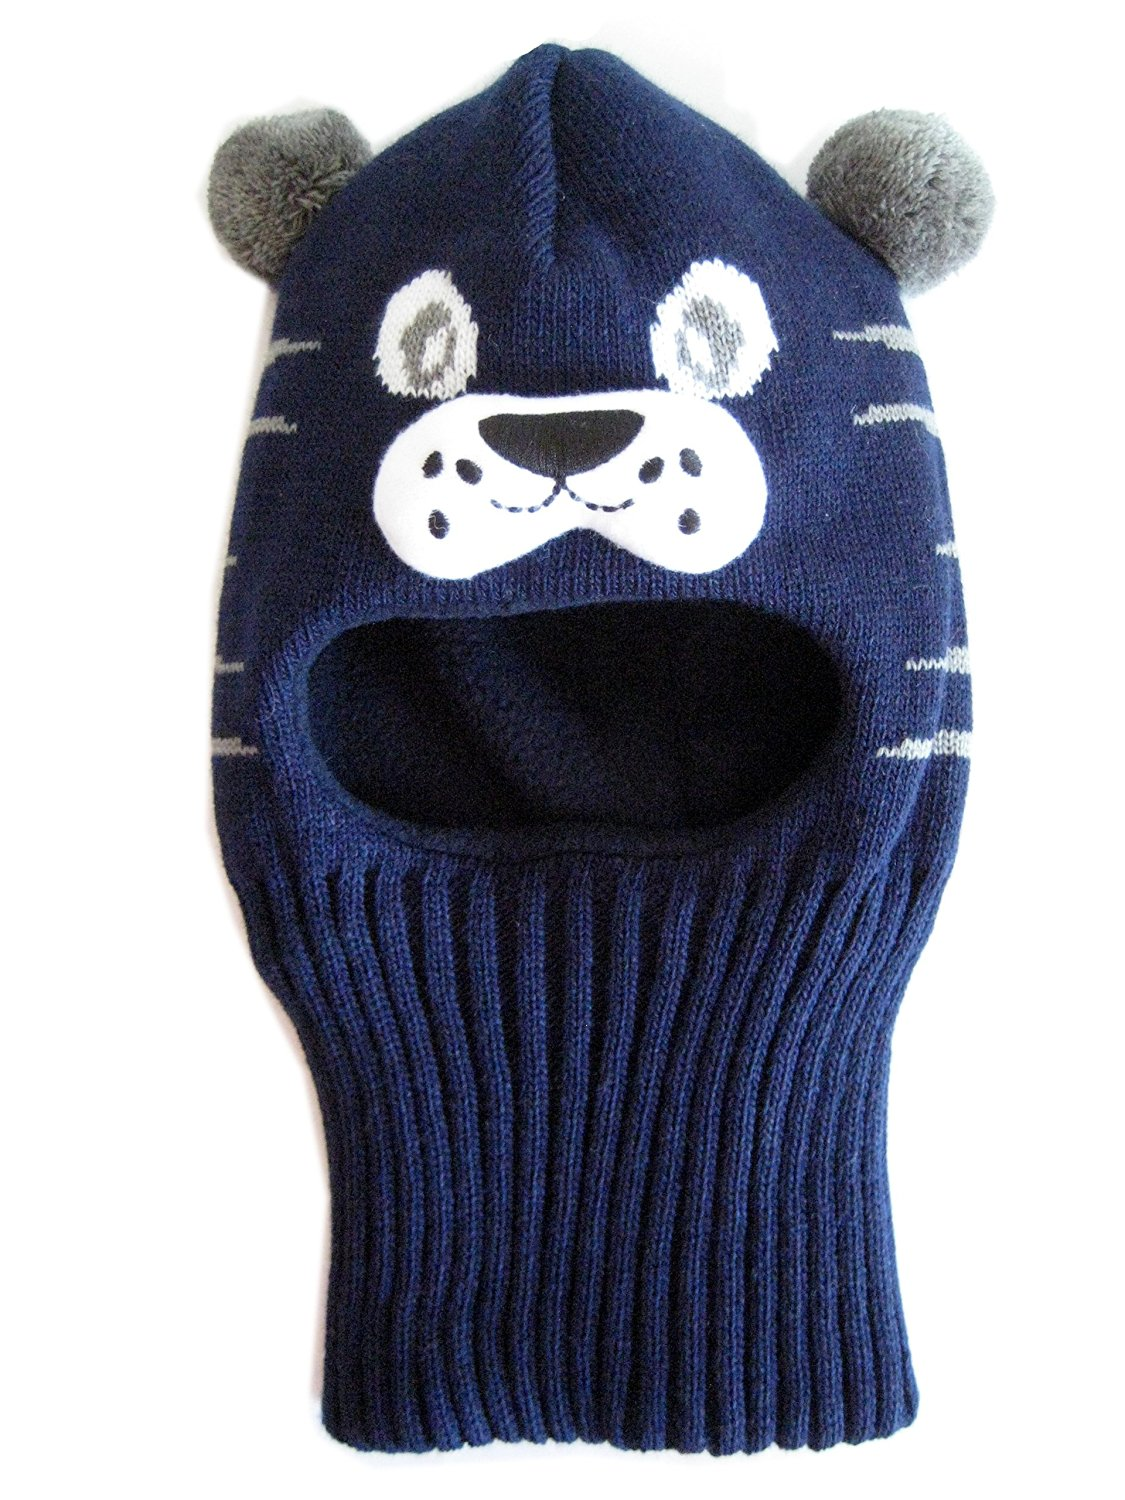 d5463cb195b0b Get Quotations · Frost Hats Warm Winter Fleece Lined Balaclava for Kids Ski  Mask for Boys and Girls M